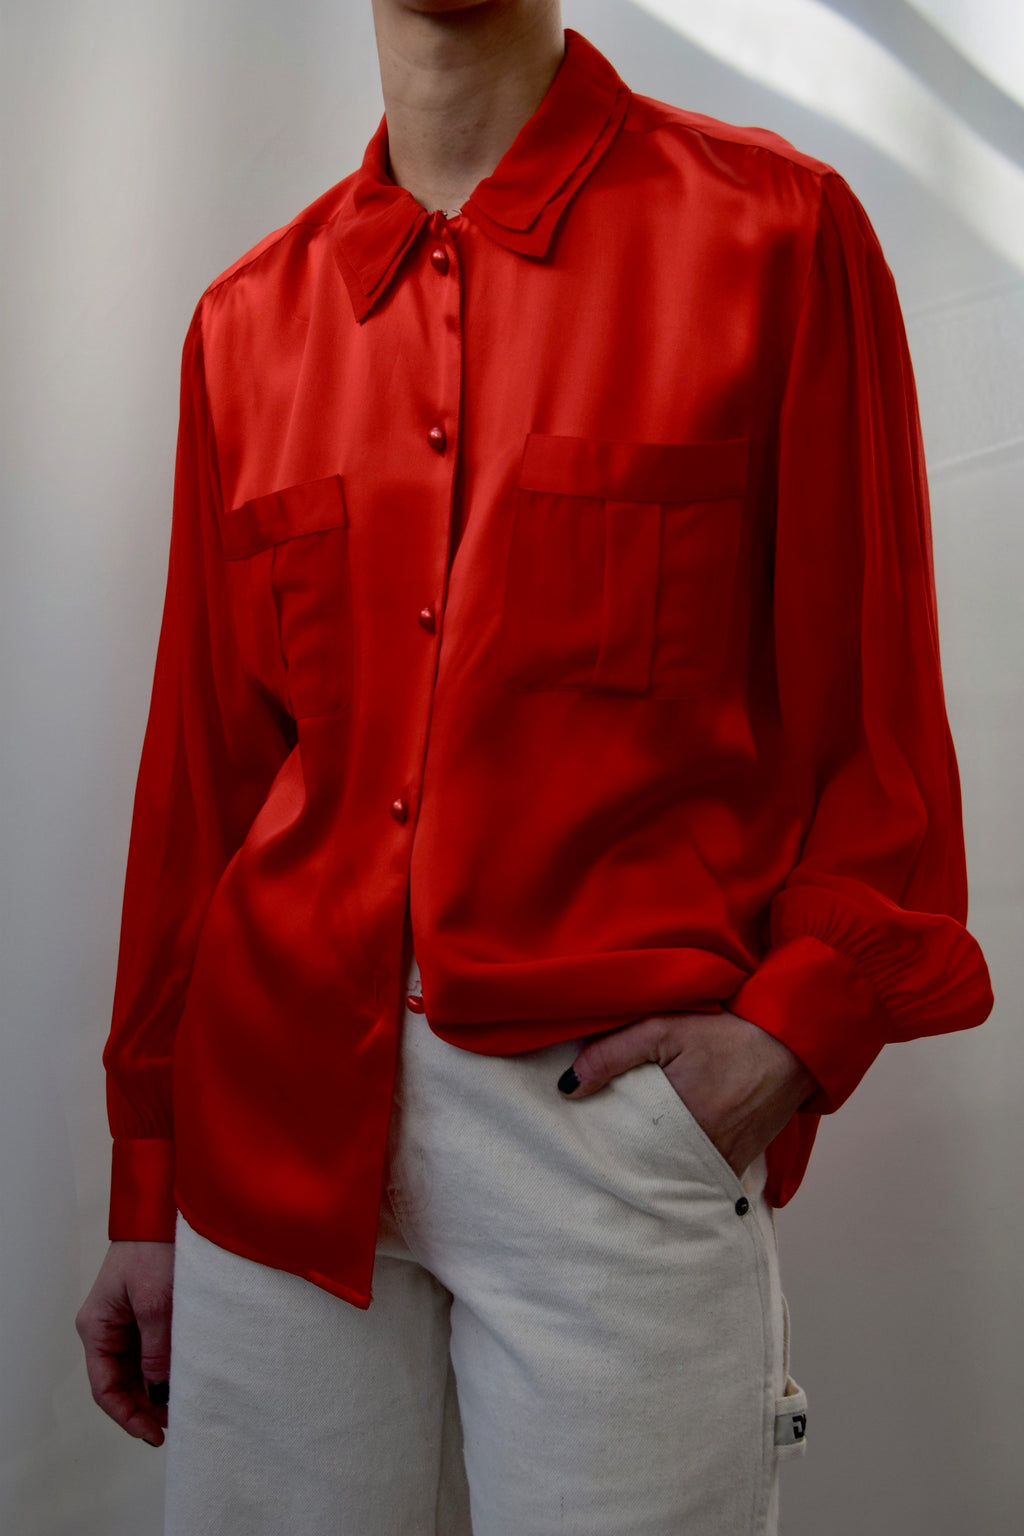 Crimson Red Satin and Sheer Silk Blouse FREE SHIPPING TO THE U.S.